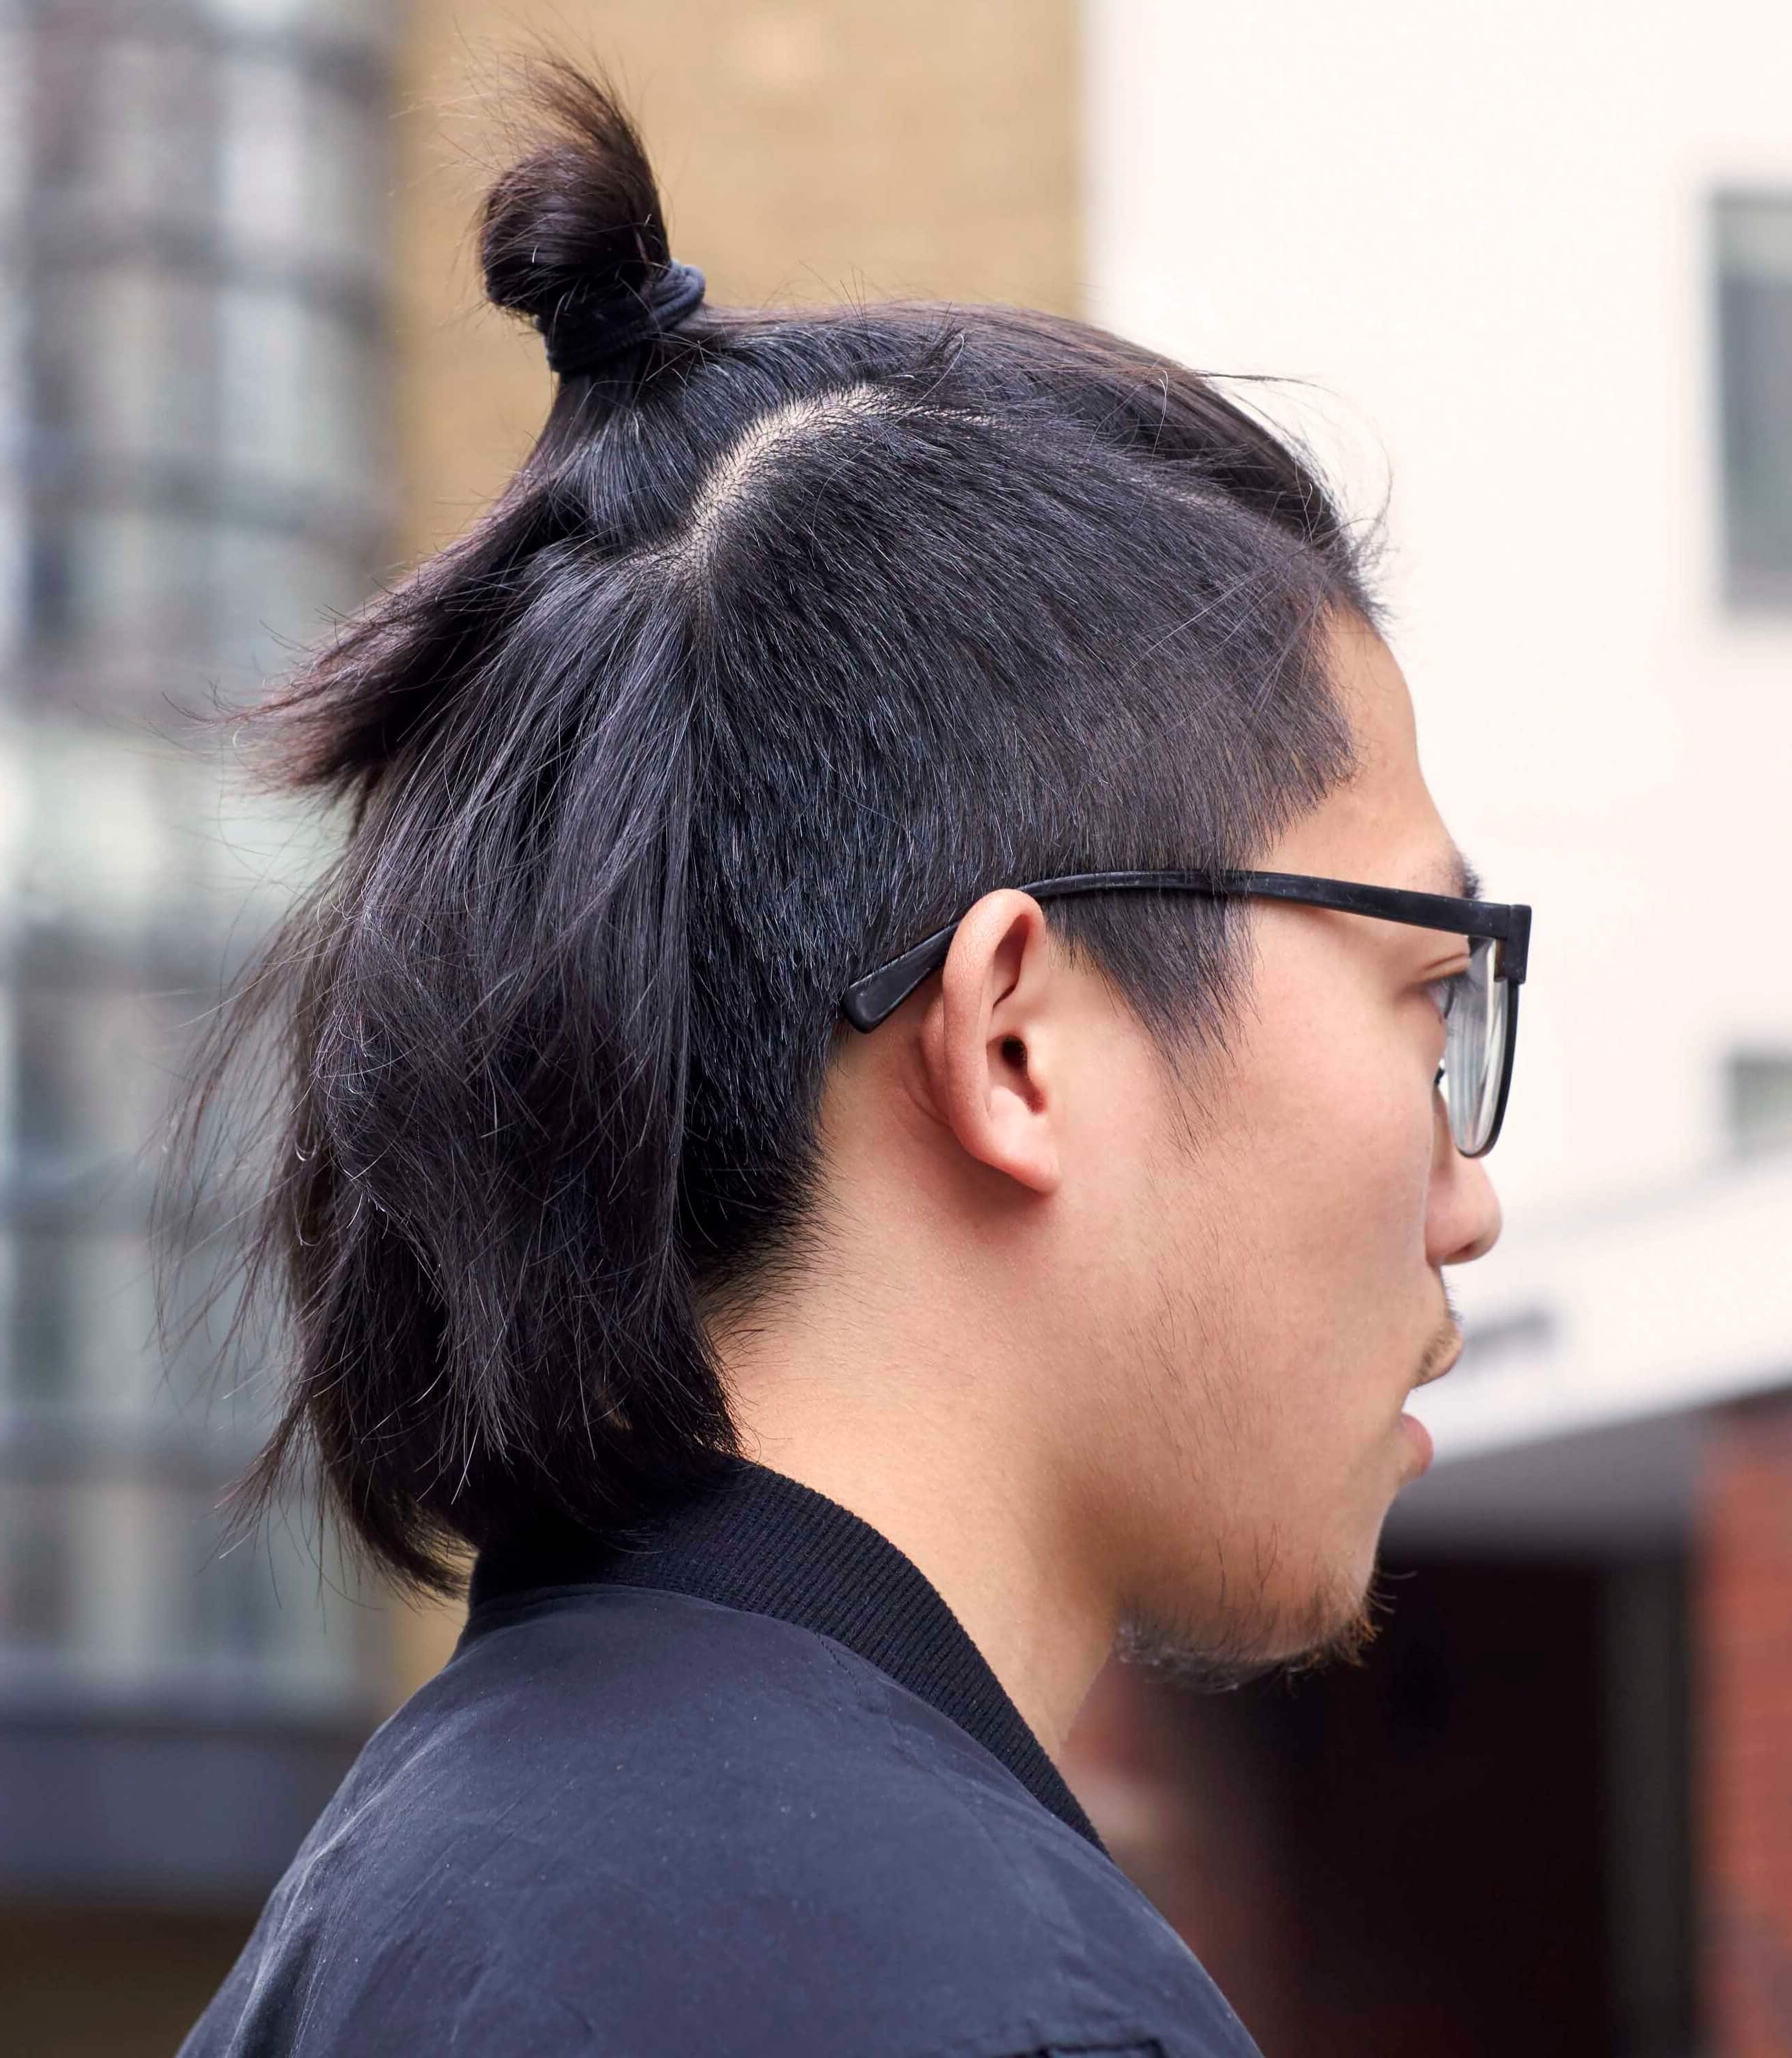 Current Barely There Mohawk Hairstyles With Regard To Mohawk Hairstyle For Men: 17 Cool Styles To Inspire Your Next Look (View 3 of 20)